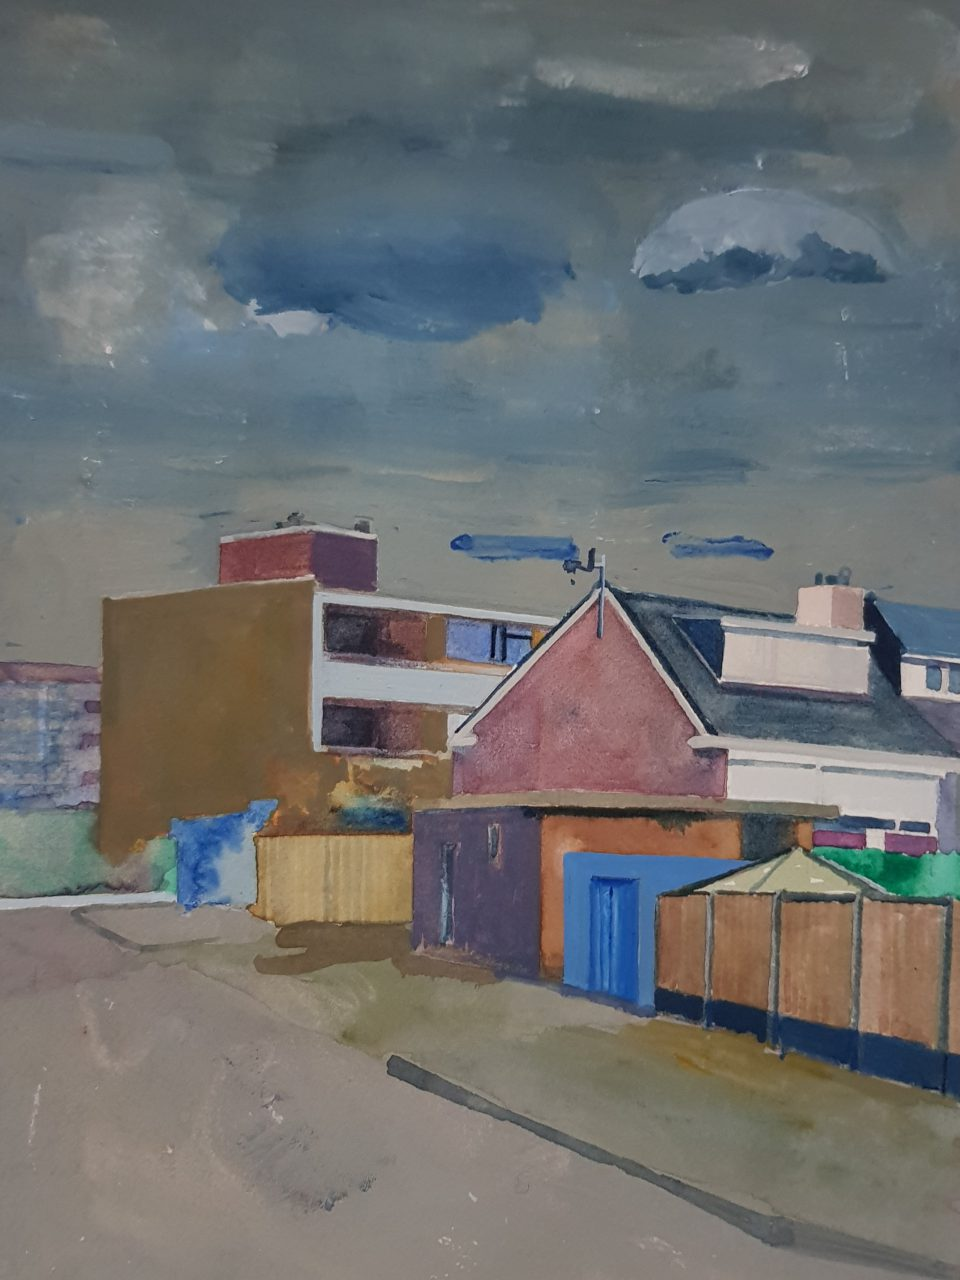 Randstad Suburbs, 2019. Watercolor and gouache on paper, size: 31x23cm